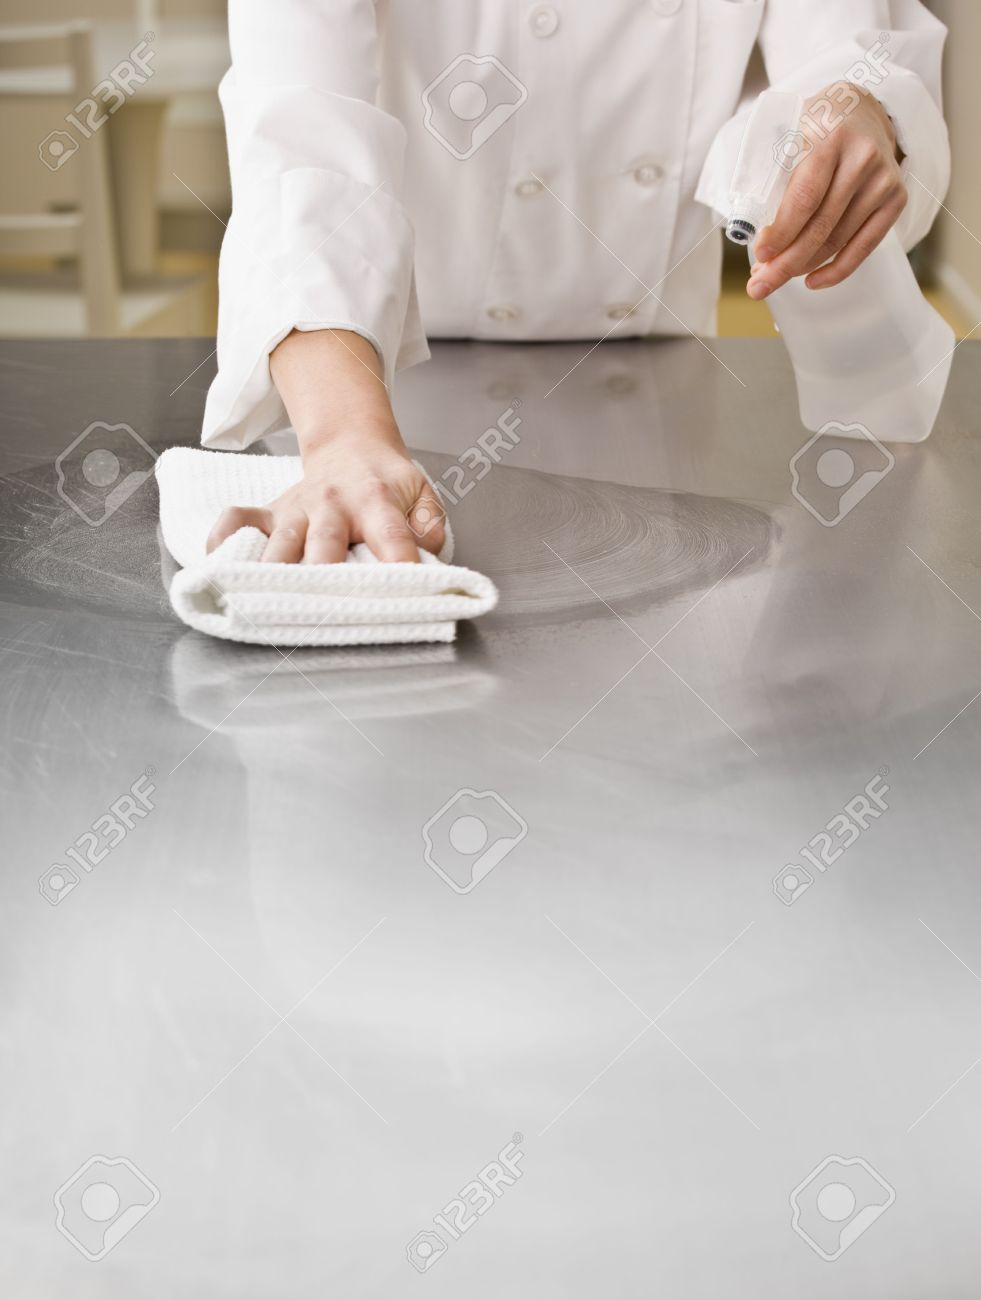 A chef is cleaning a counter in a professional kitchen with a bottle of solution and a rag. Vertically framed shot. - 5333254